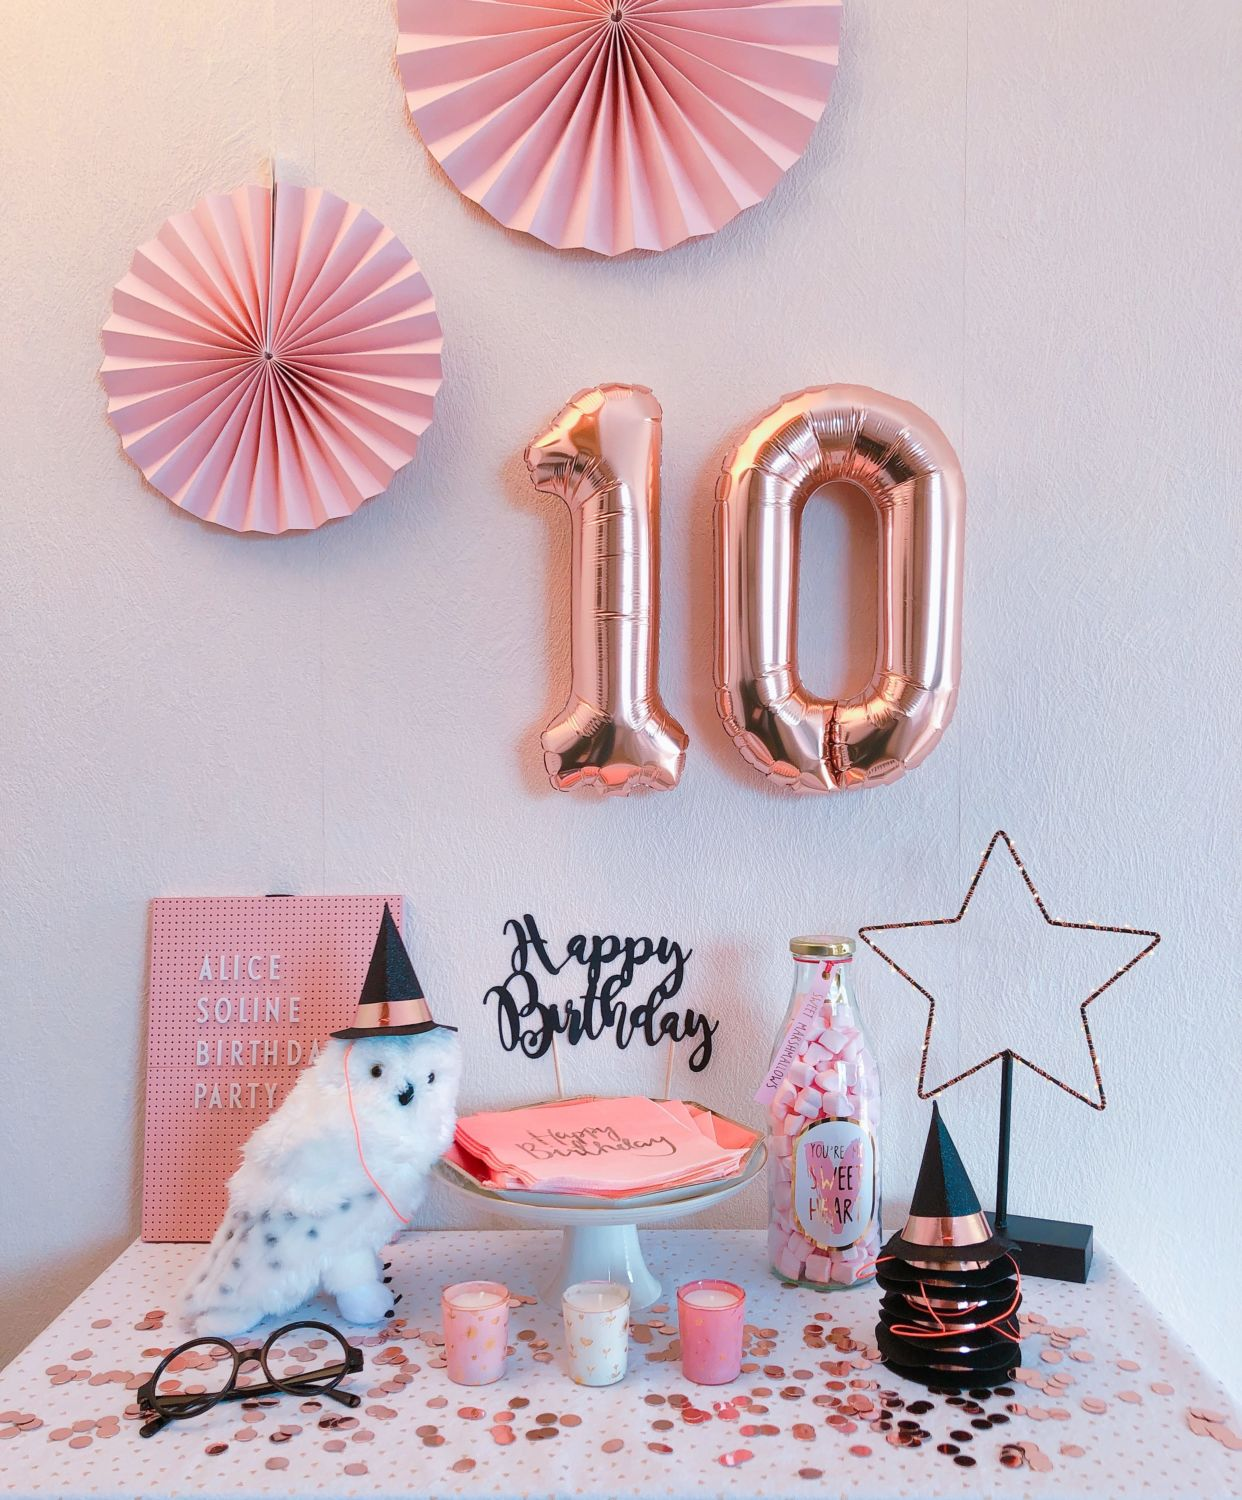 theme anniversaire fille 10 ans anniversaire. Black Bedroom Furniture Sets. Home Design Ideas